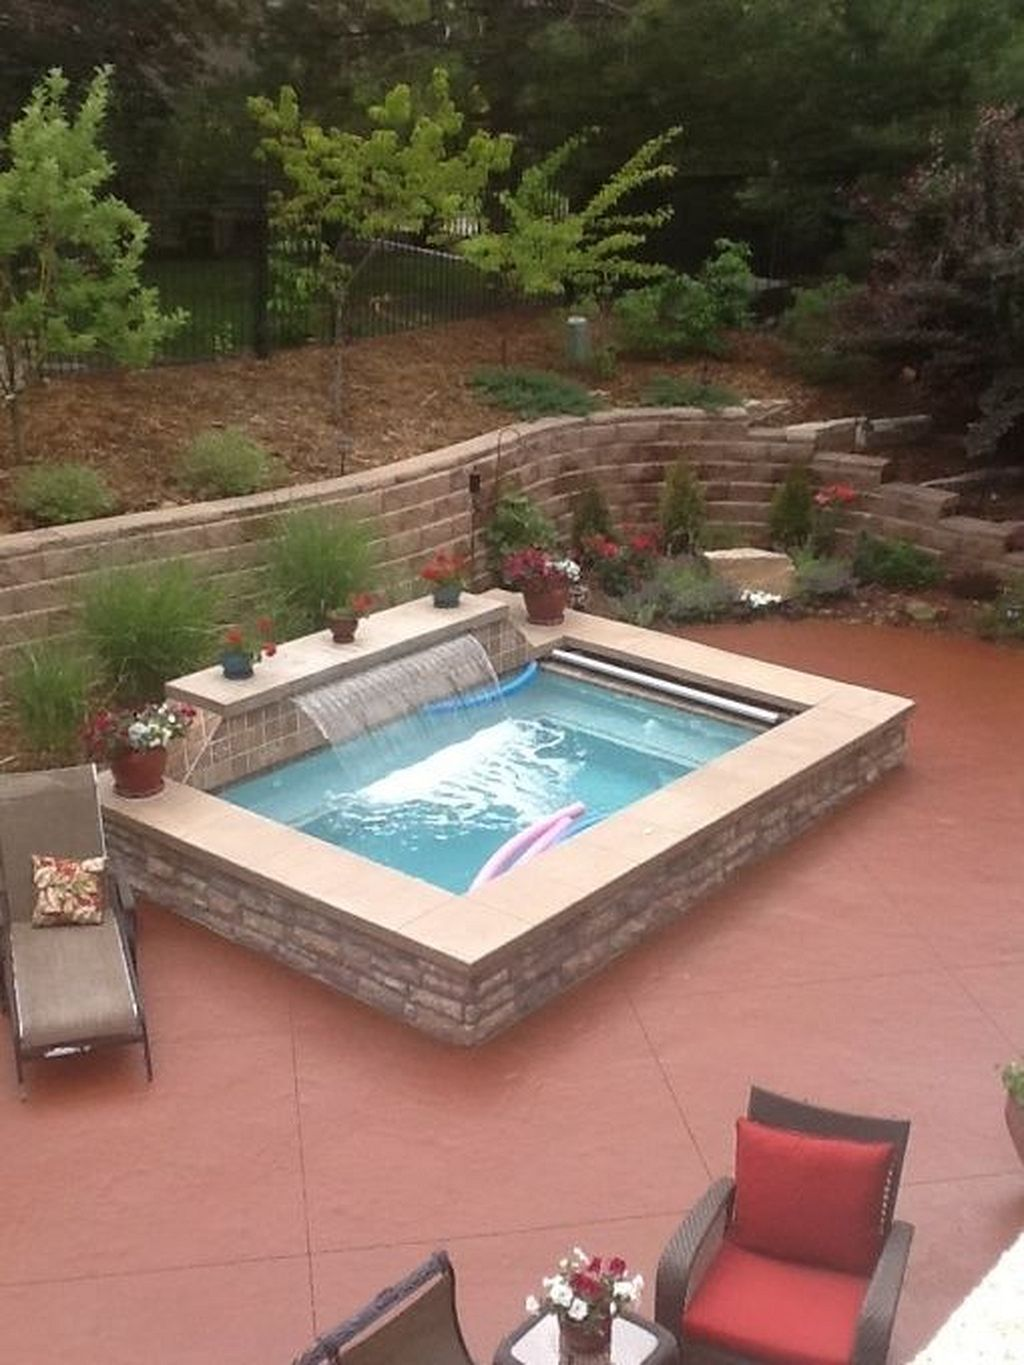 Pin by Kimba Pack on yard stuff in 2018 | Pinterest | Giardino ... Outdoor Backyard Pools on family outdoor pool, backyard natural pool, diy outdoor pool, backyard sports pool, backyard pool table, backyard infinity pool, backyard wave pool, summer outdoor pool, apartment outdoor pool, school outdoor pool, indoor outdoor pool, backyard pool landscape, home outdoor pool, backyard beach, shower outdoor pool, backyard pool view, backyard indoor pool, backyard lighting pool, backyard without pool, hotel outdoor pool,